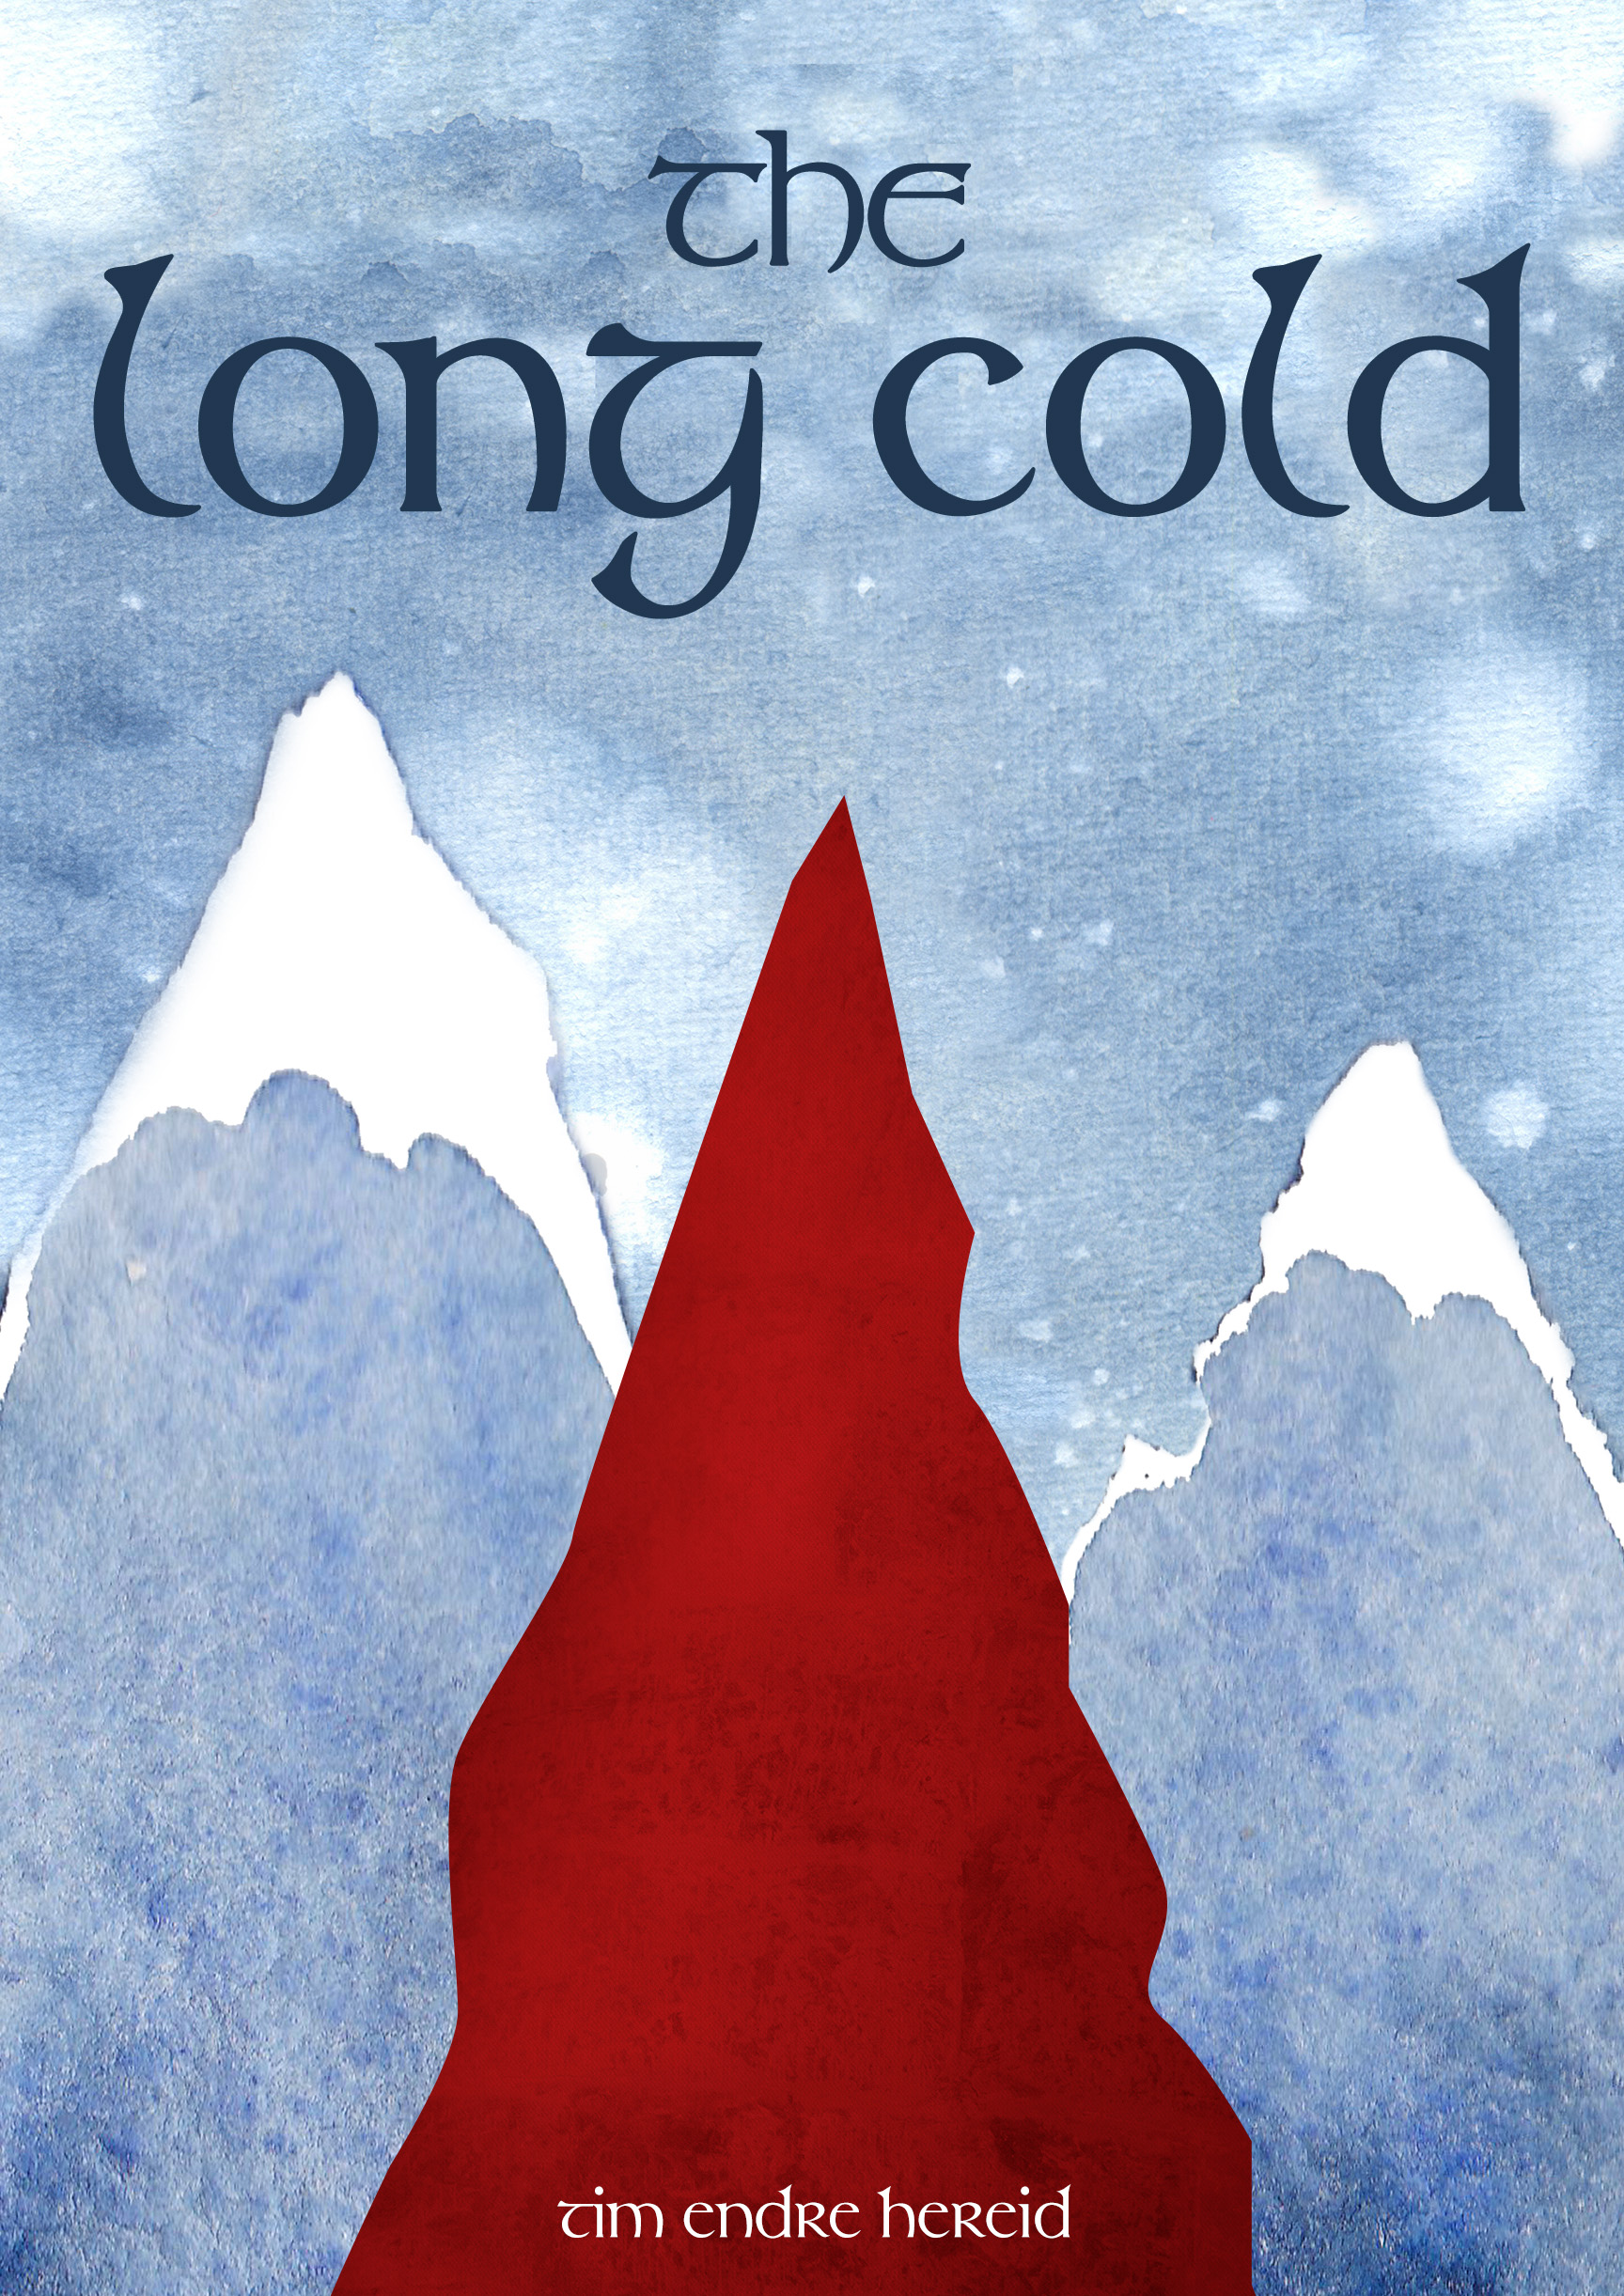 thelongcold_cover copy.jpg